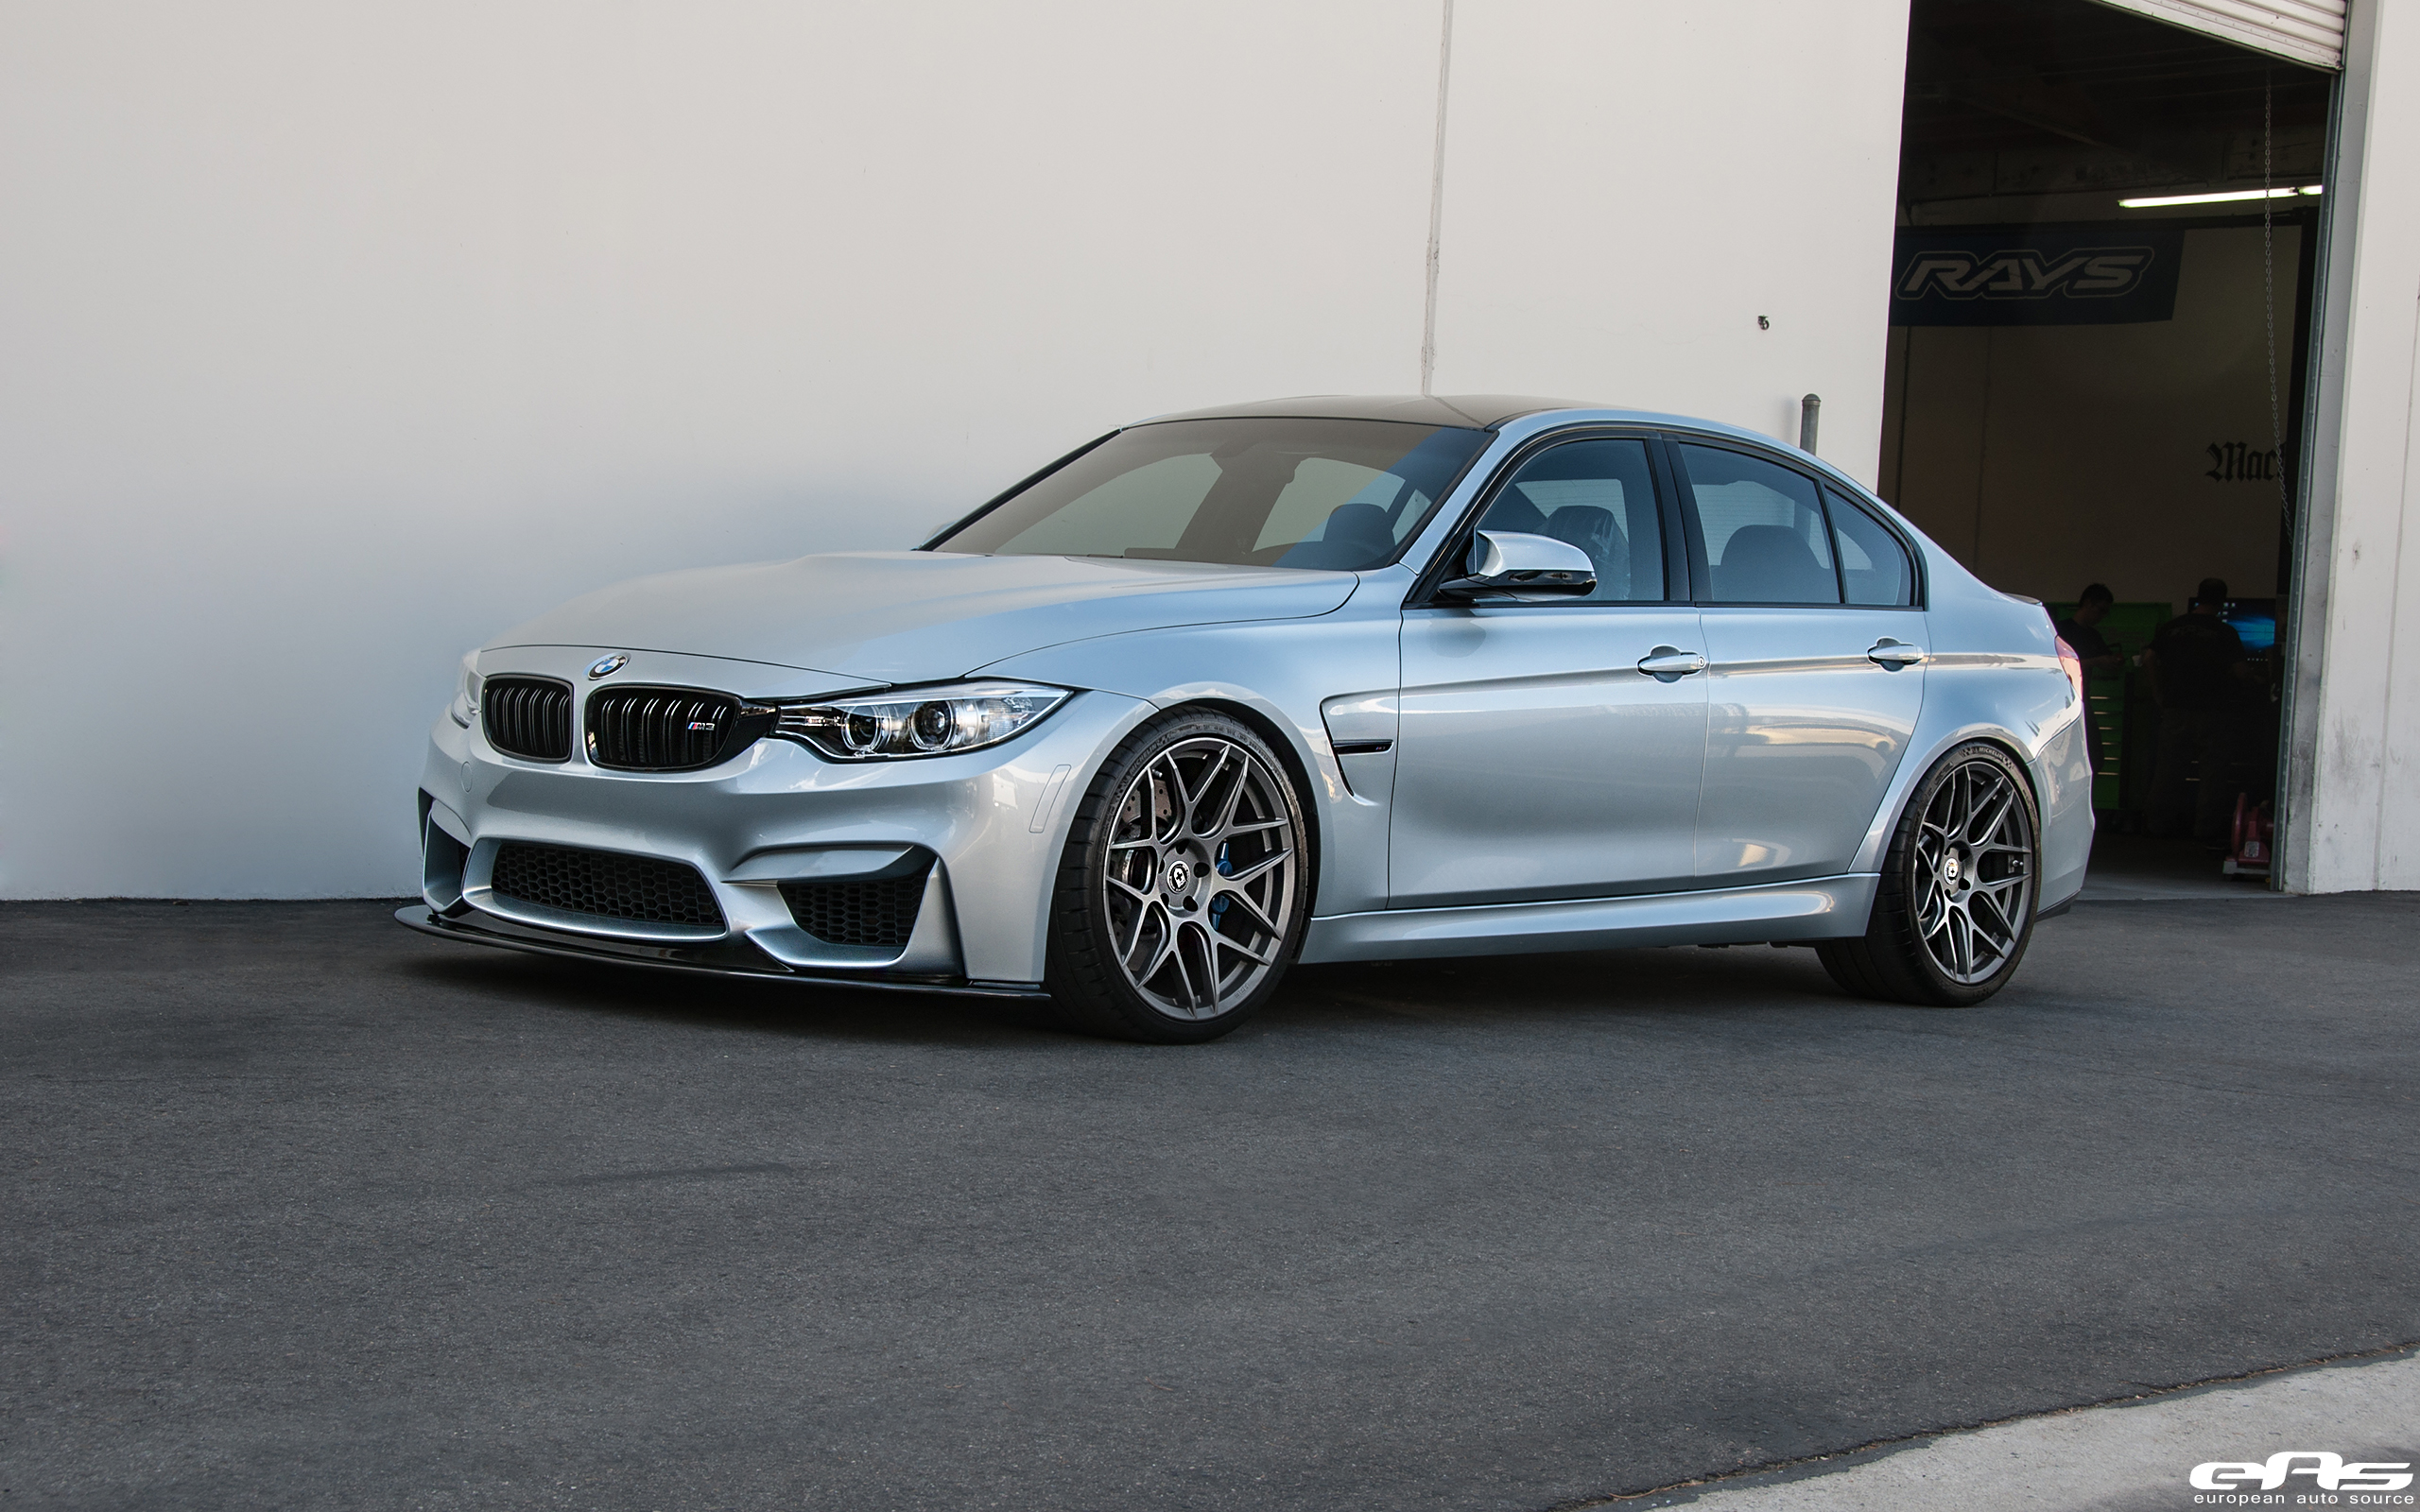 Elsa The 2015 Silverstone Metallic F80 M3 Bmw